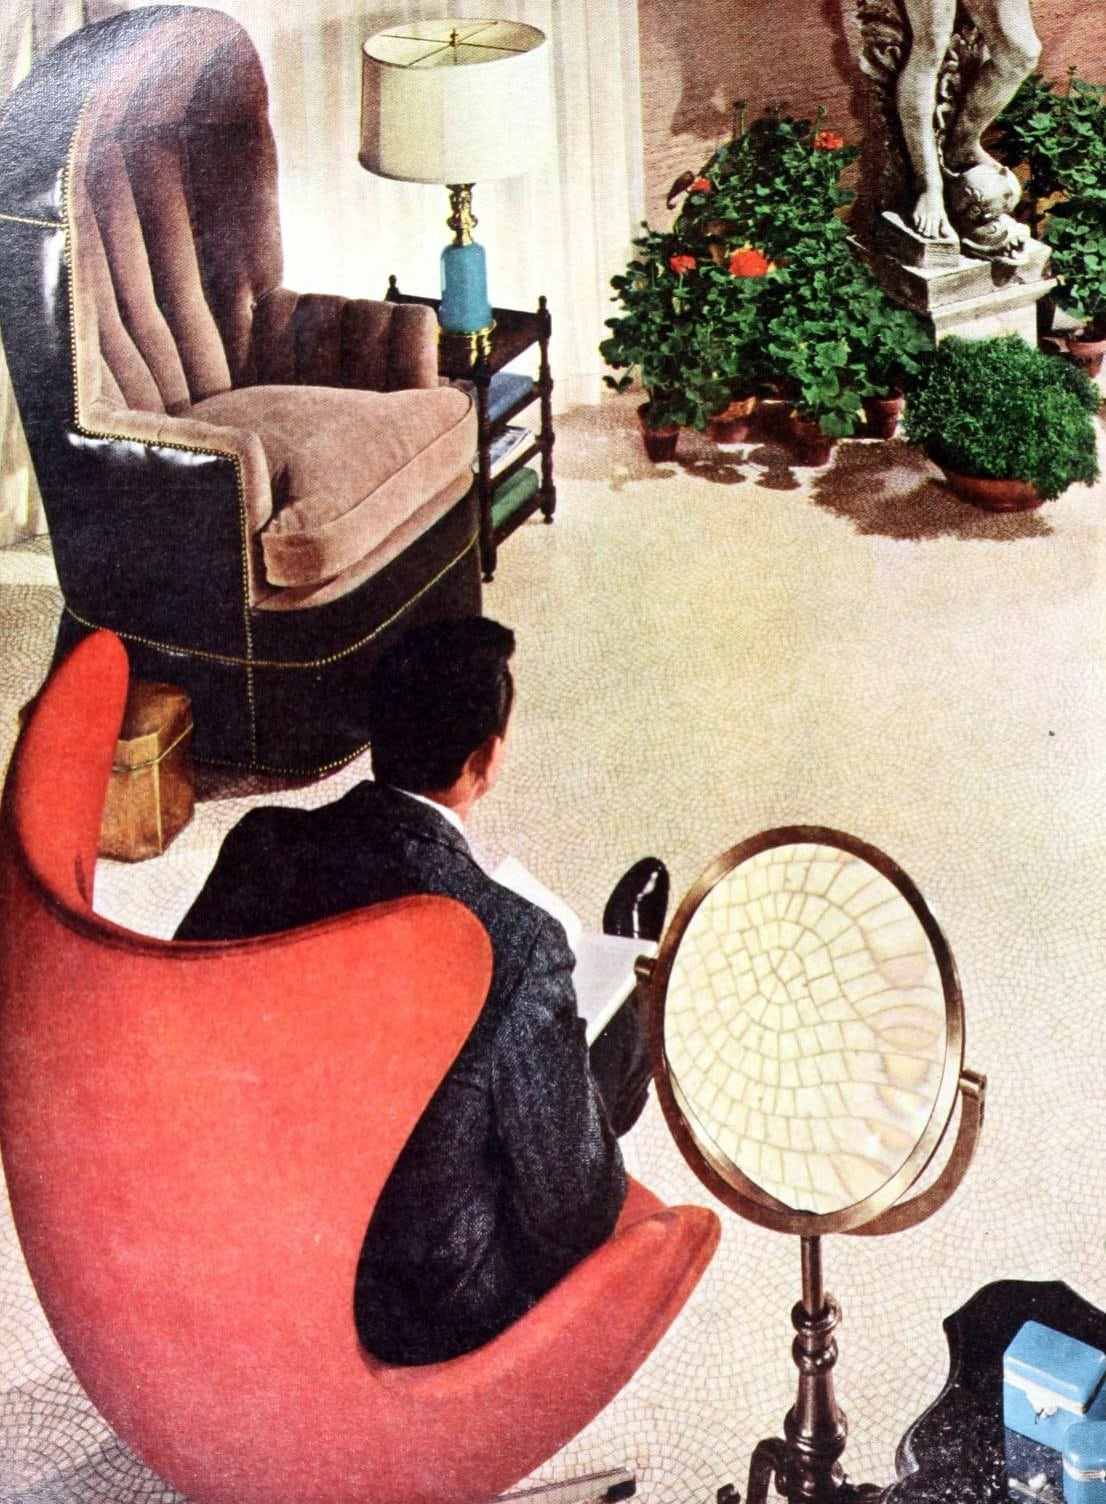 Retro egg-shaped chair styles from the sixties (1965)